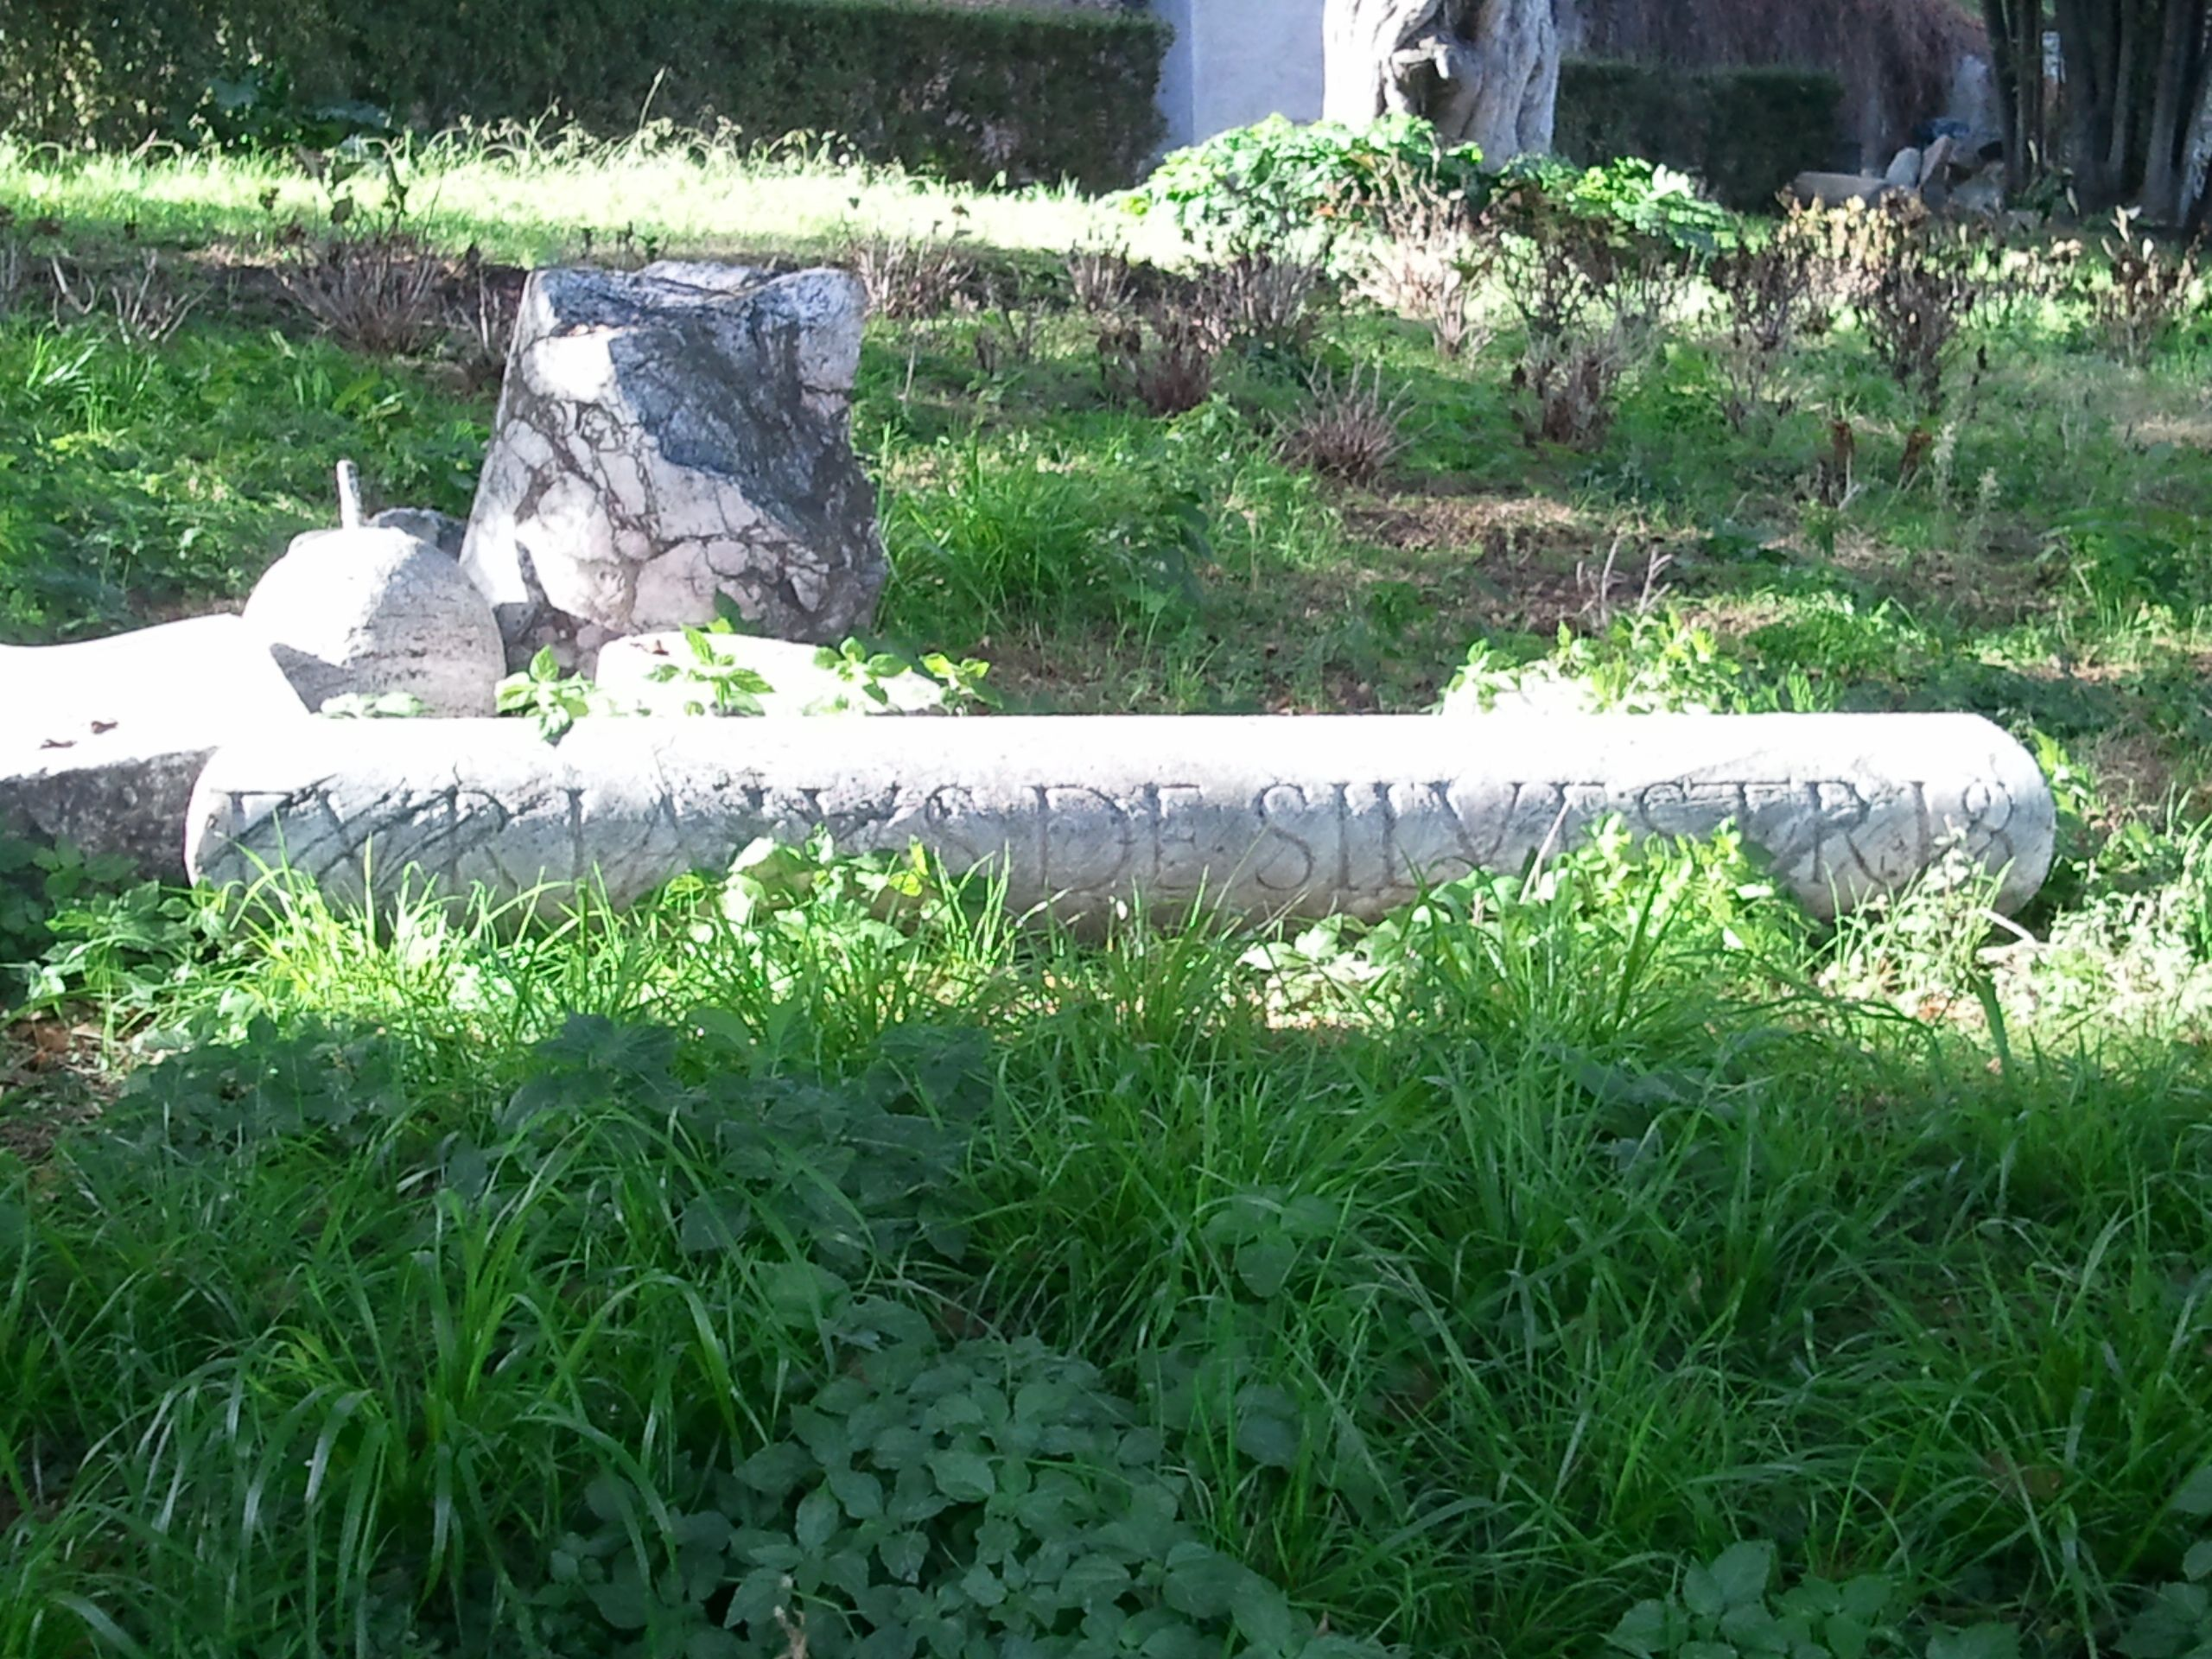 The time of the Roman Empire can be felt also from the pillar which rolled.   /公園に転がってる柱からも歴史を感じられる @Roma